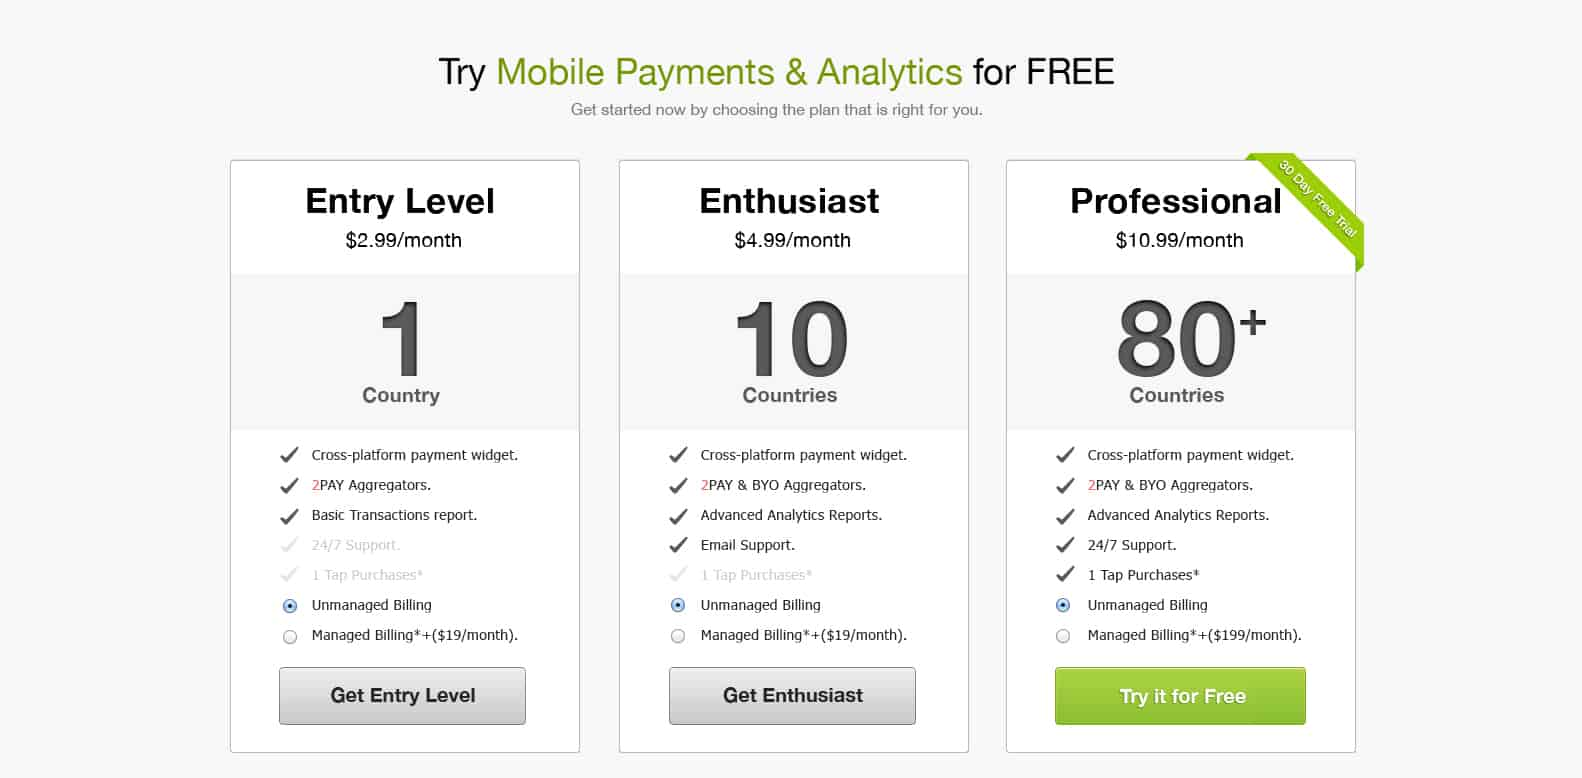 2Pay Signup Packages